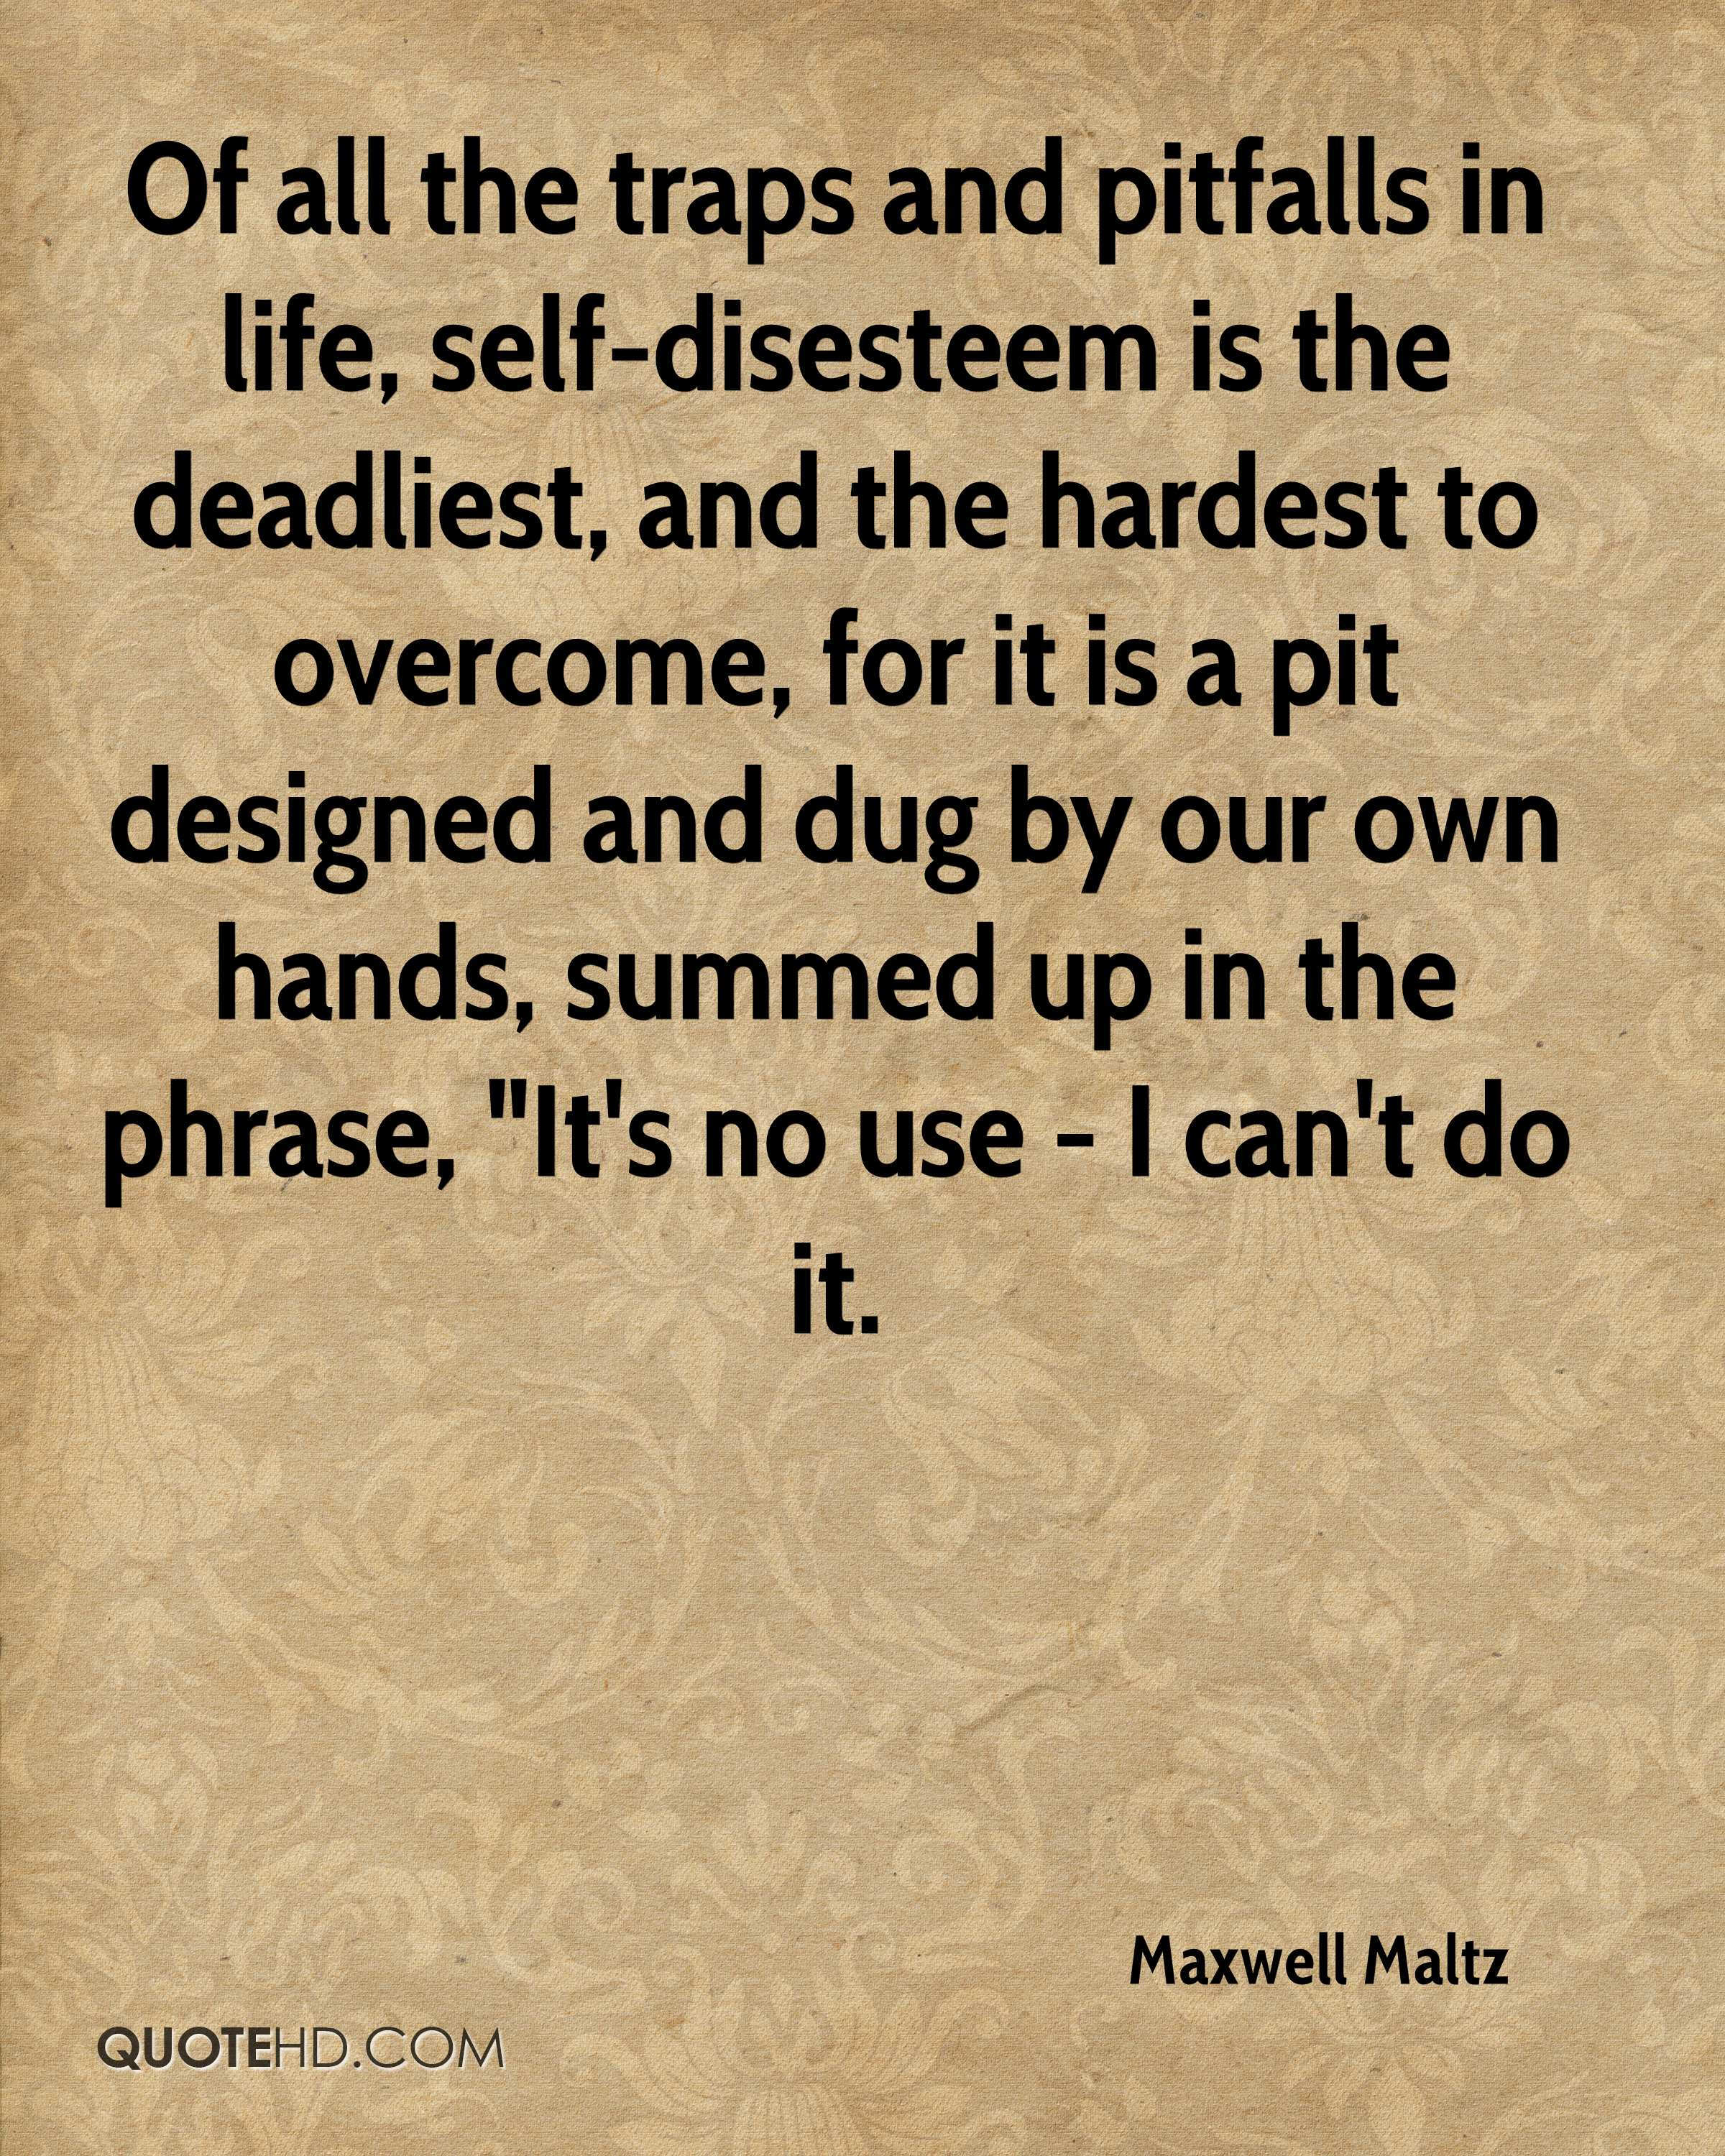 """Of all the traps and pitfalls in life, self-disesteem is the deadliest, and the hardest to overcome, for it is a pit designed and dug by our own hands, summed up in the phrase, """"It's no use - I can't do it."""